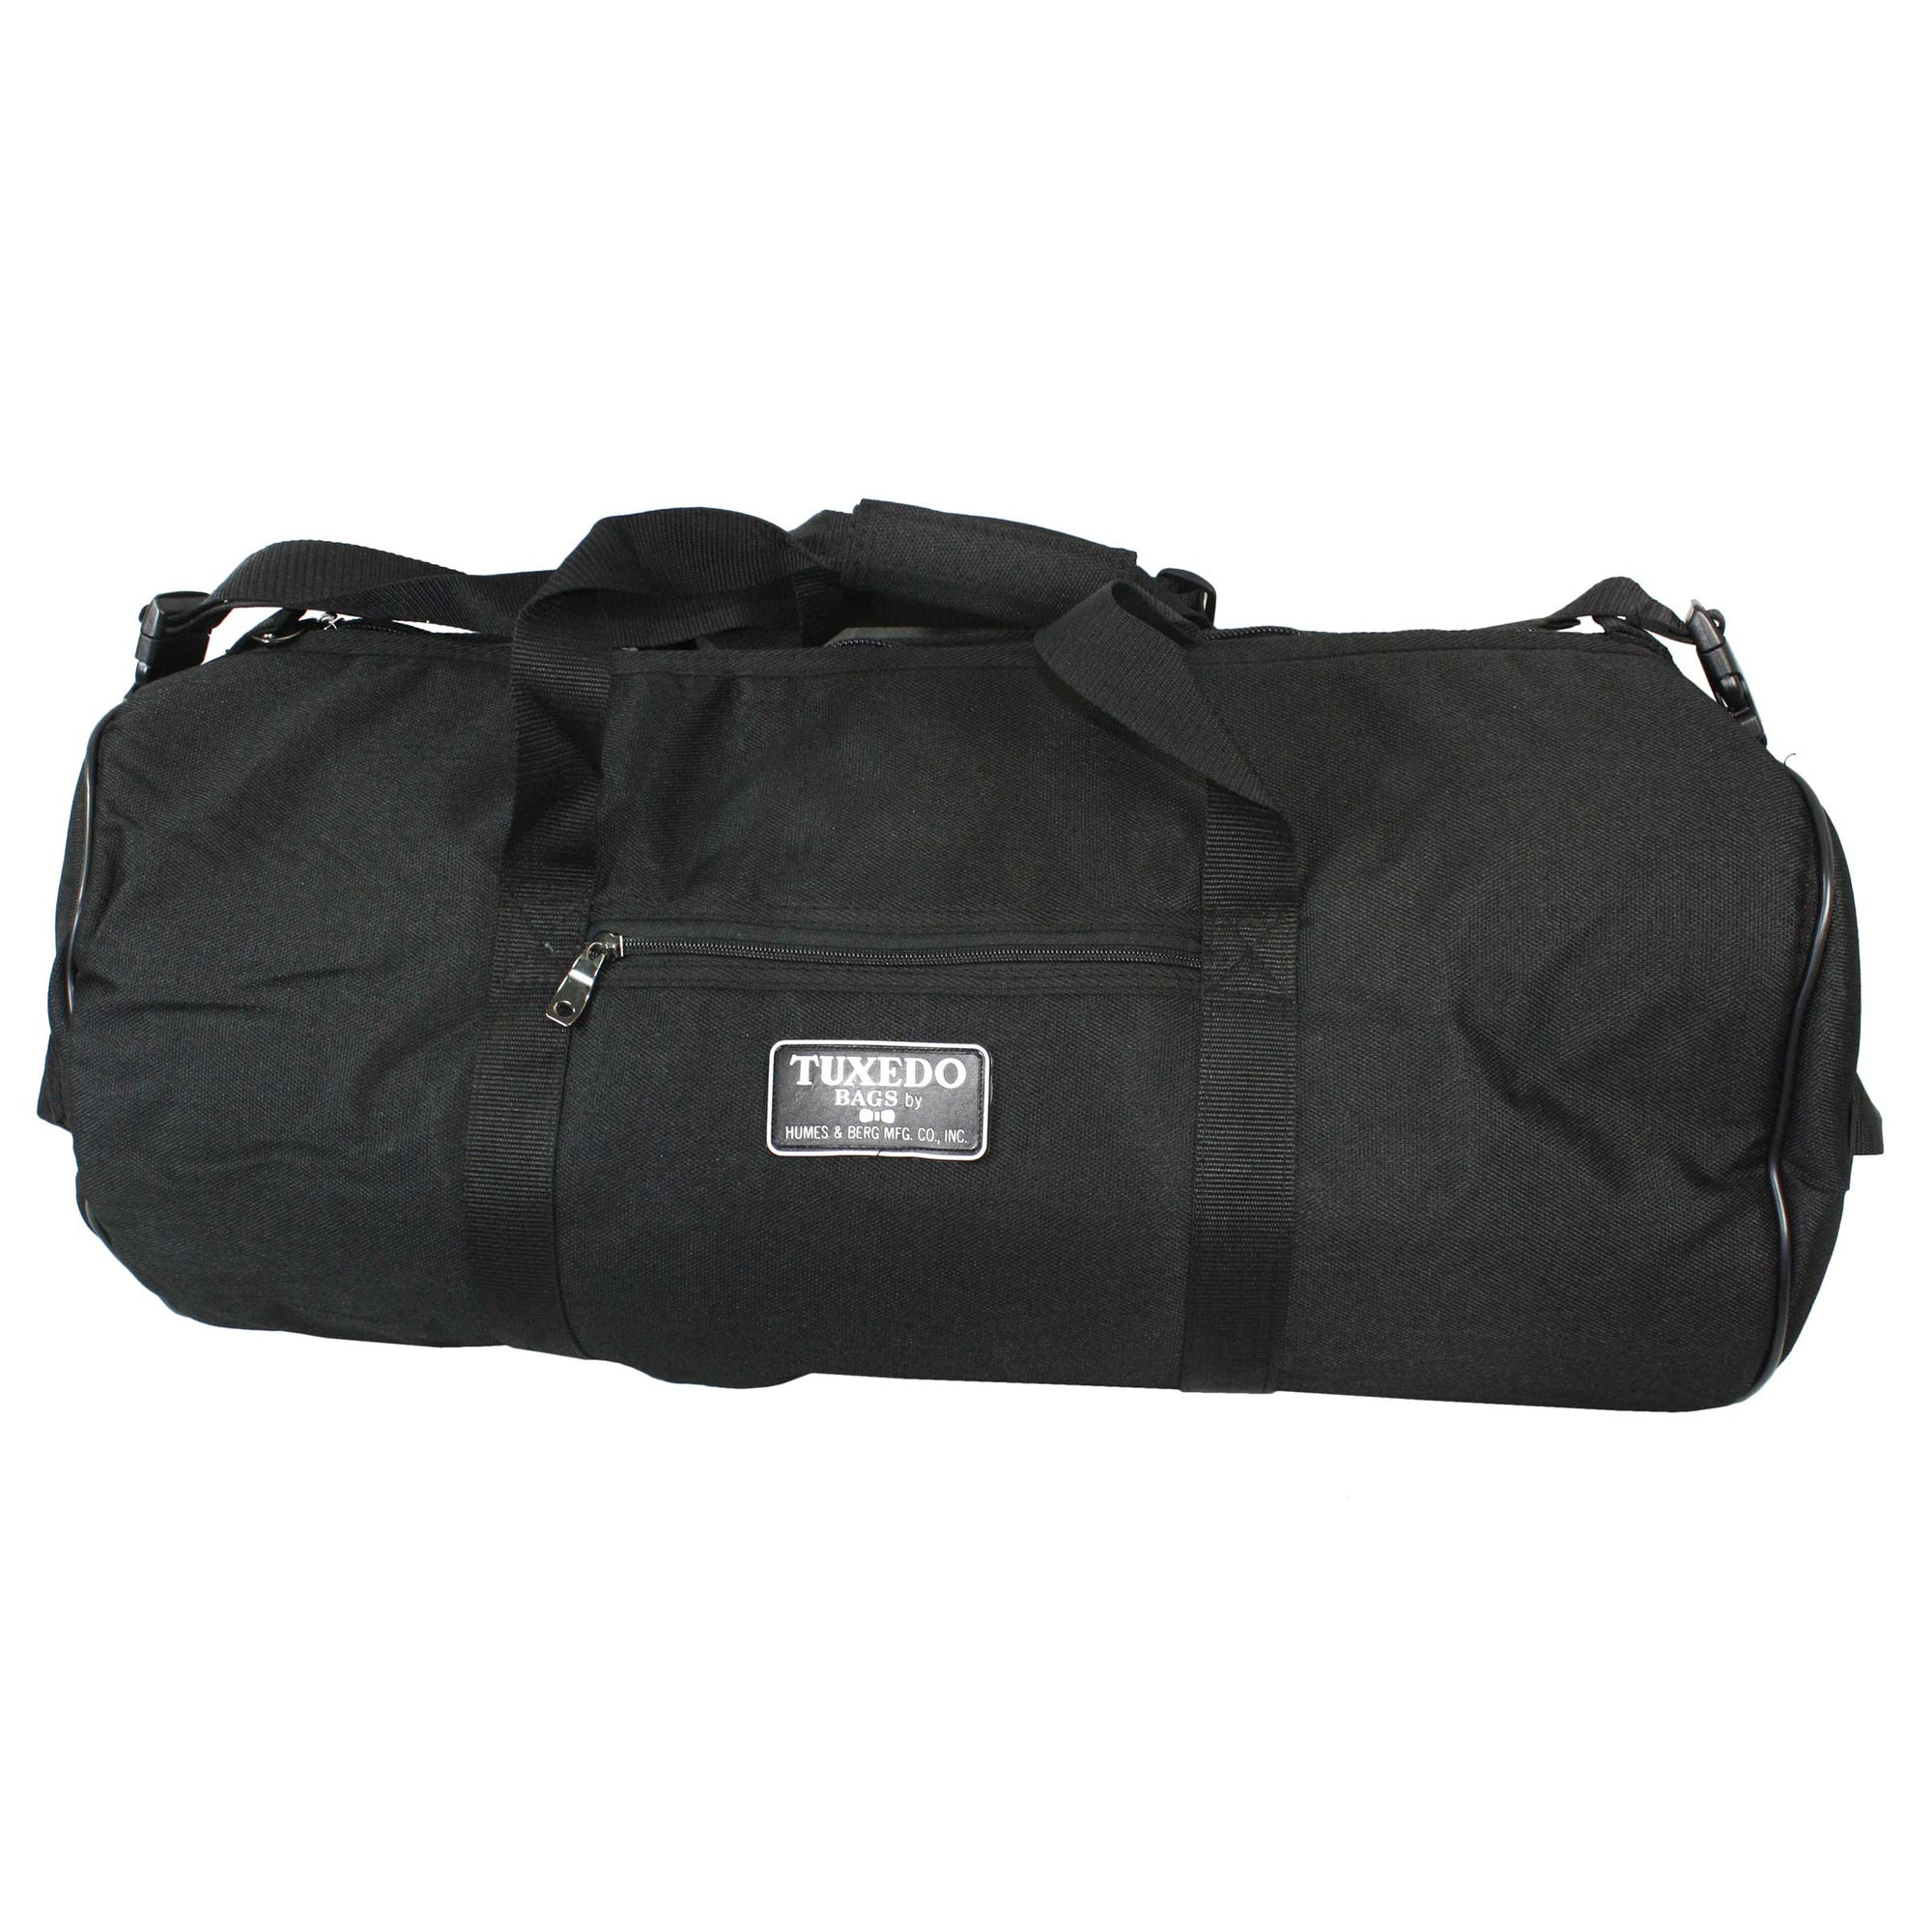 H&B  Tuxedo 33 x 9 Inches Companion Bag